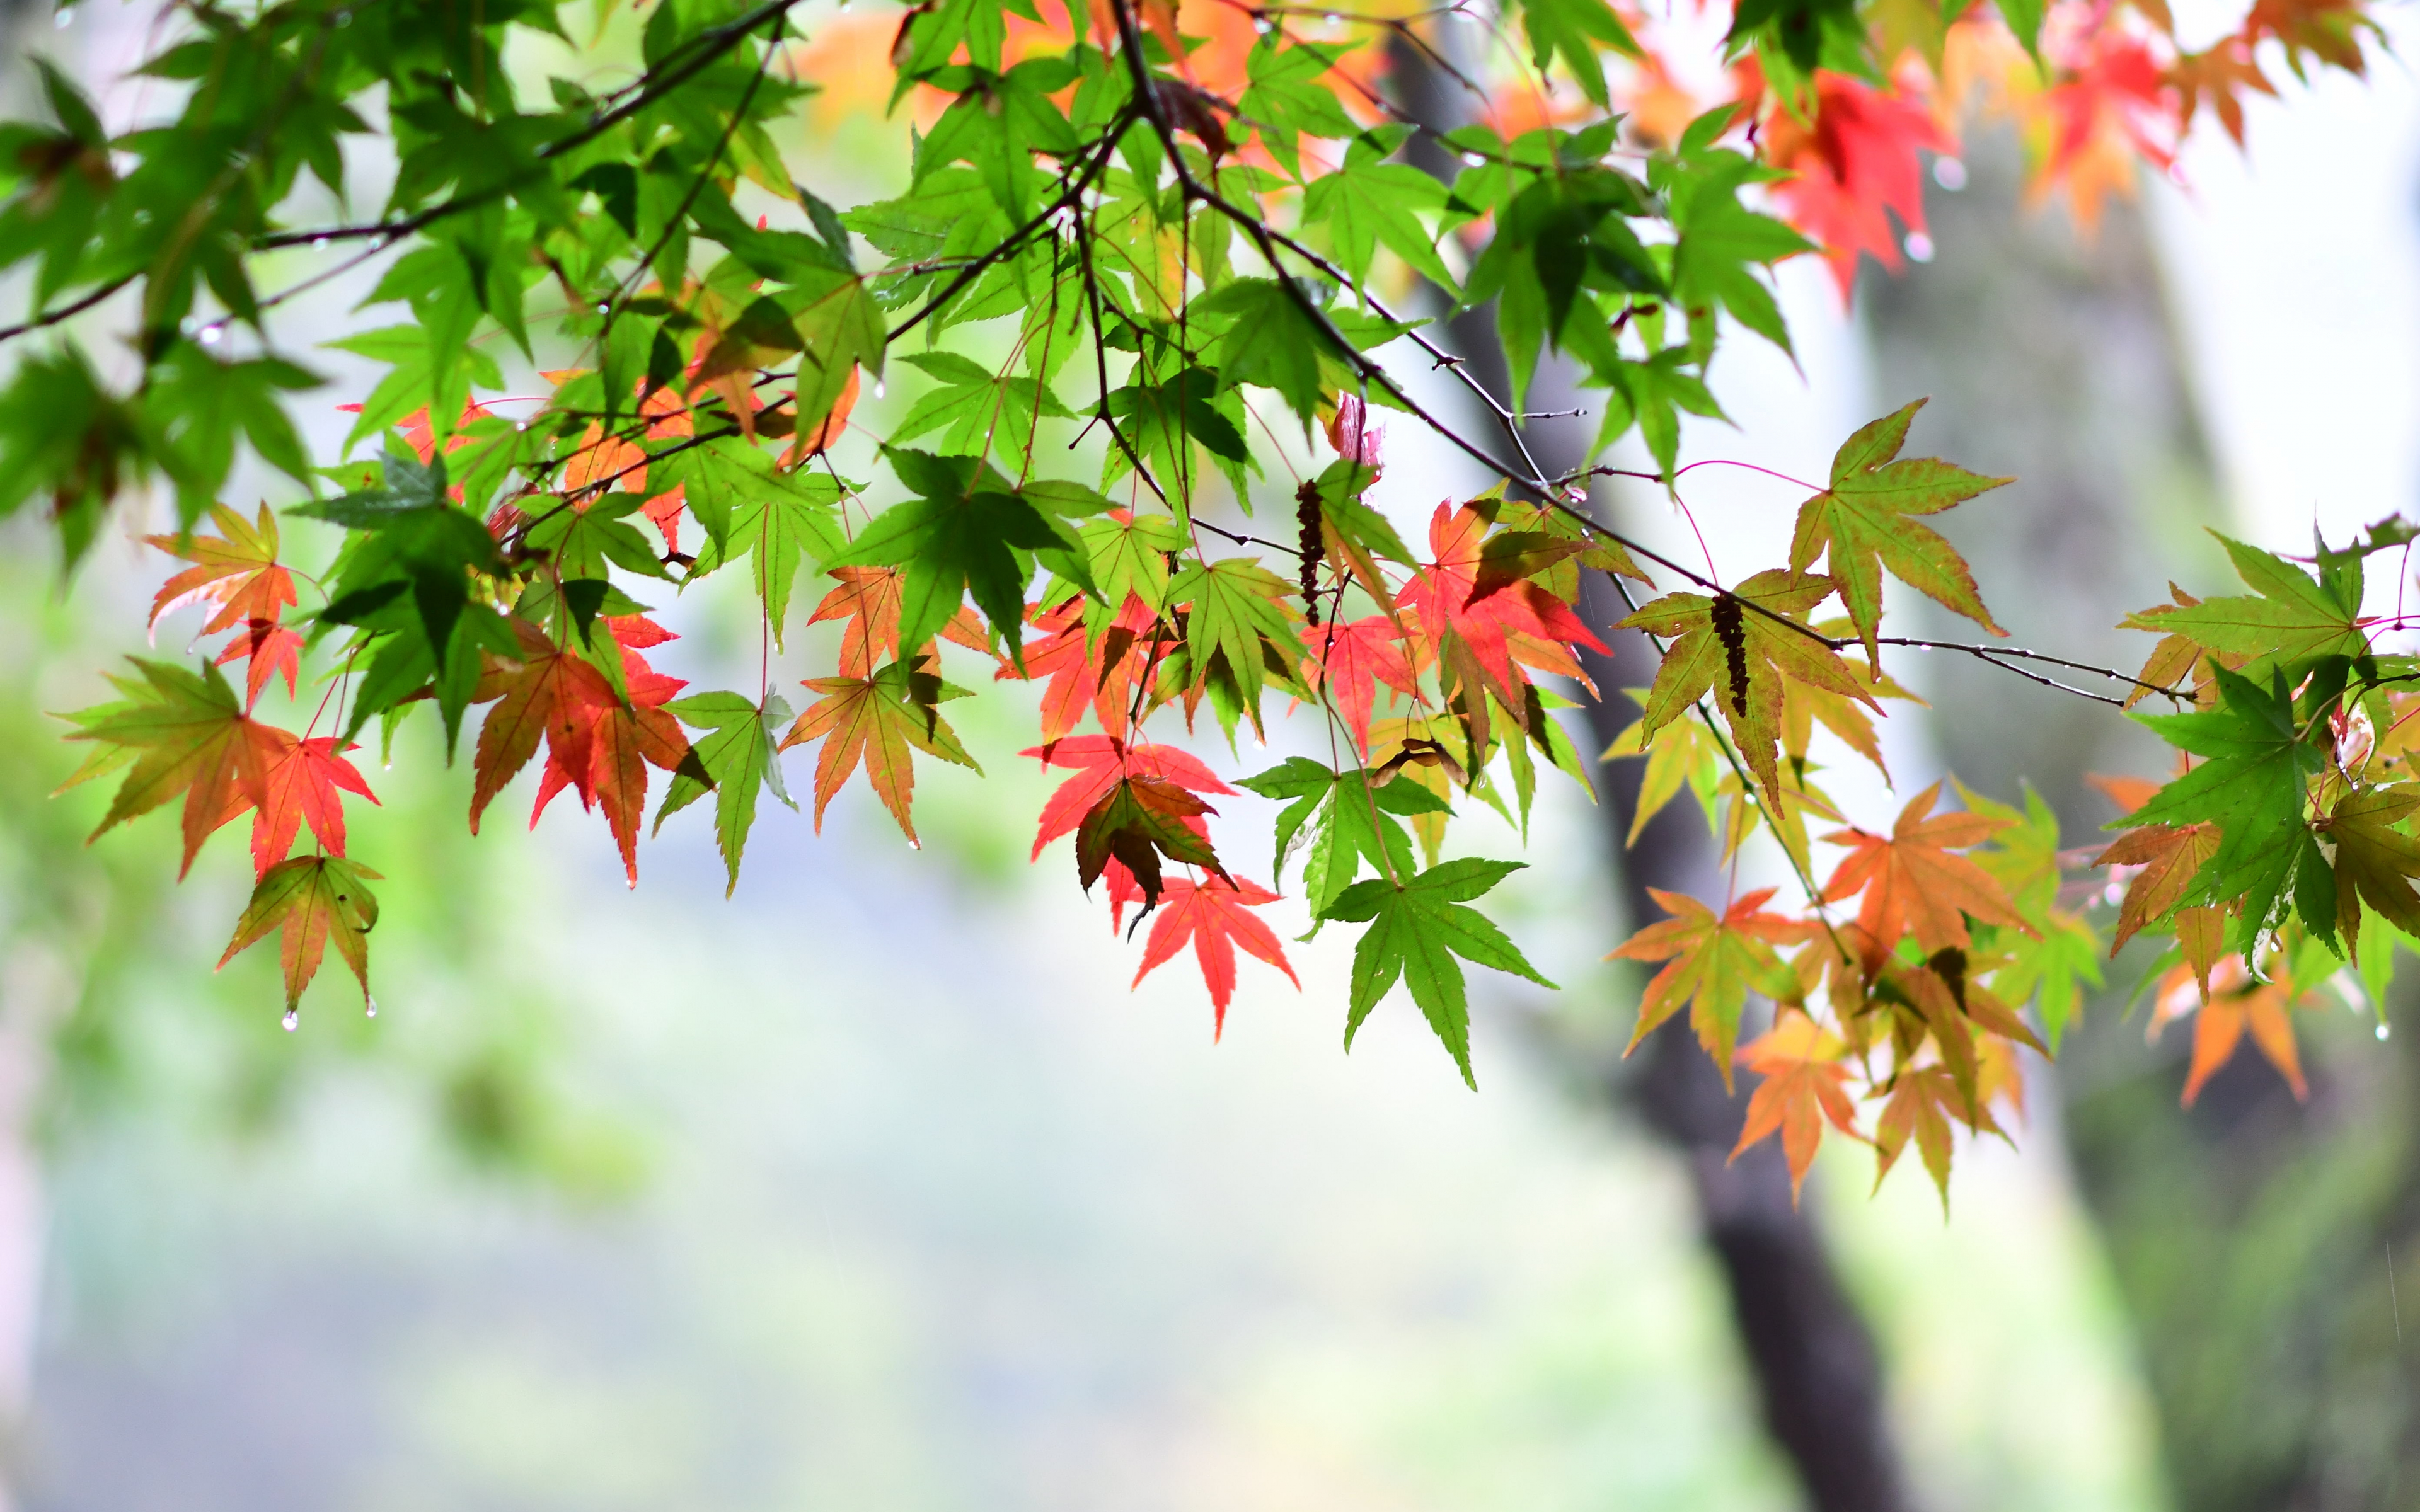 Download 3840x2400 Wallpaper Maple Leaf Leaves Spring 4k Ultra Hd 16 10 Widescreen 3840x2400 Hd Image Background 926